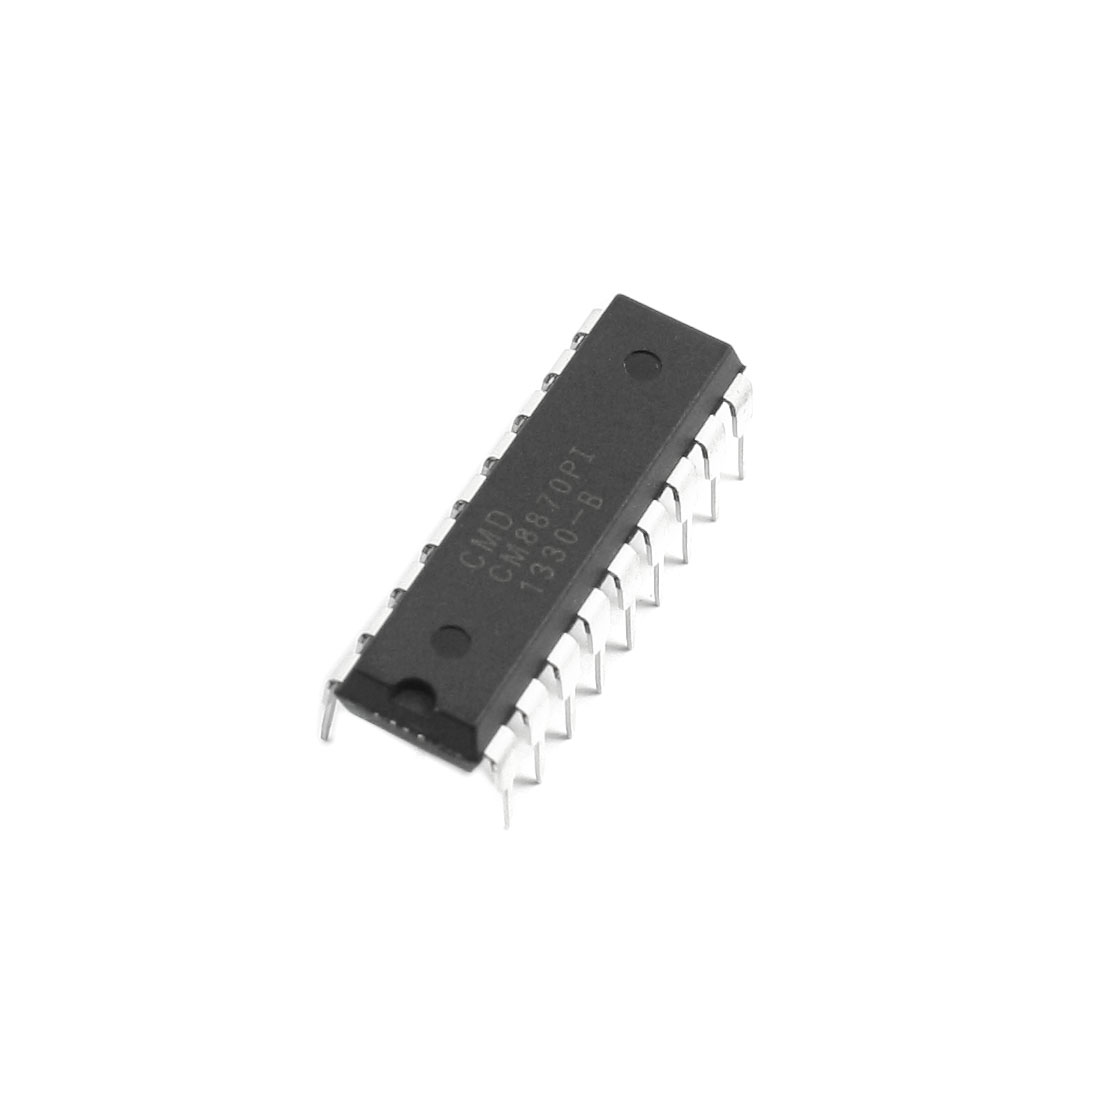 MT8870 18Pin DIP18 2.54mm Pitch 2 Row DIP Mounting DTMF Receiver IC Integrated Circuit Chip